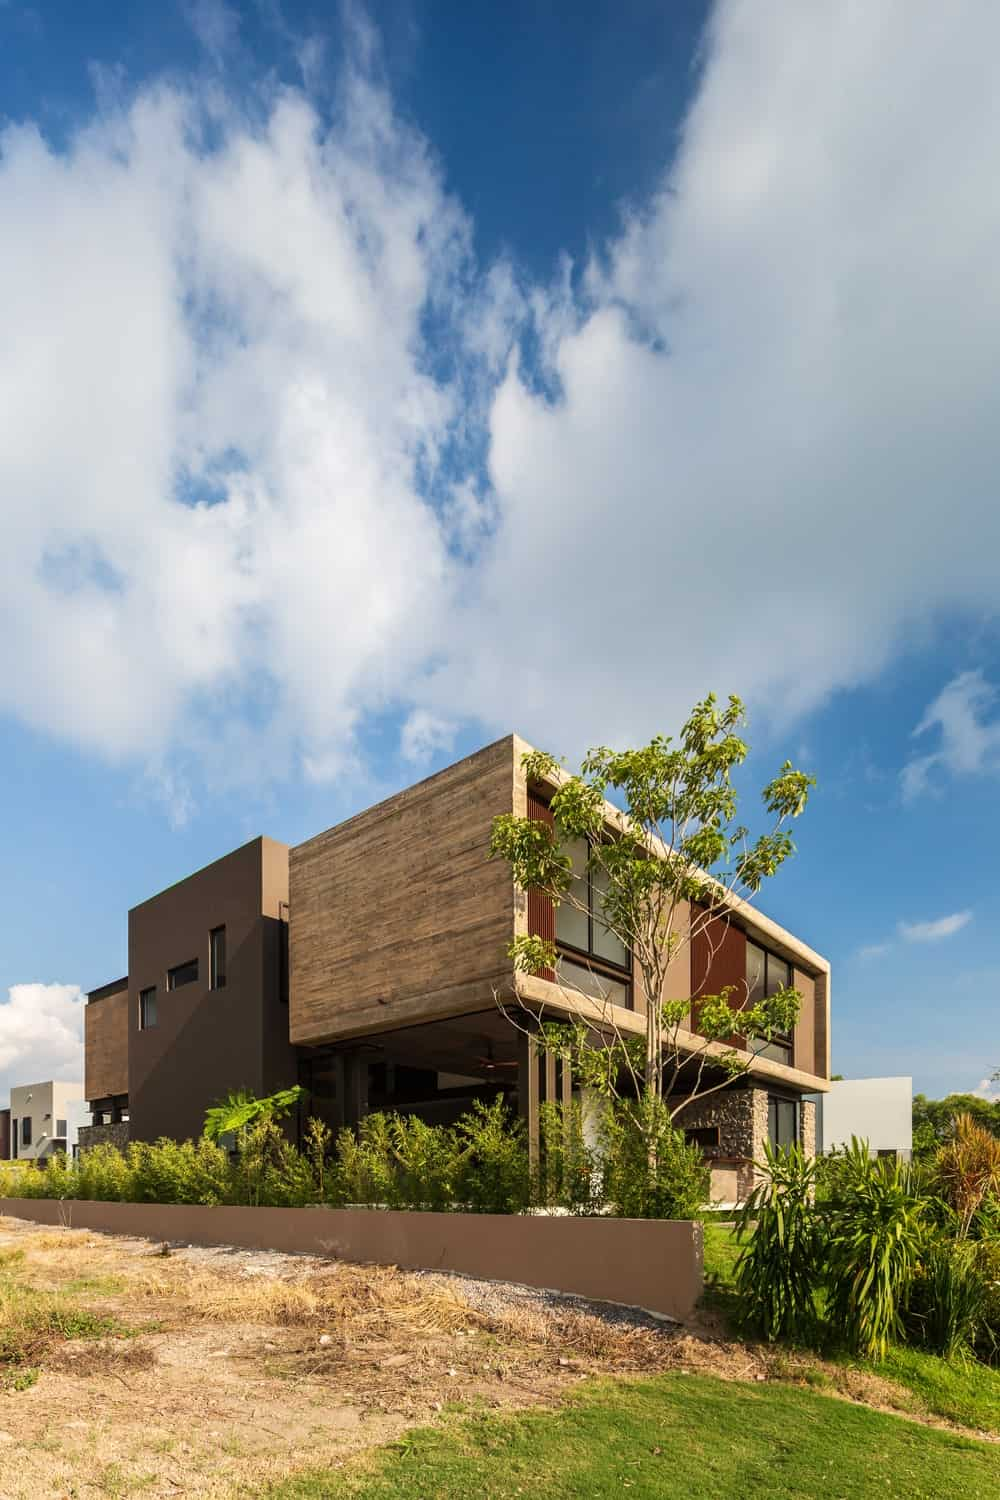 This angled side view gives a look at the back of the house and its structures.